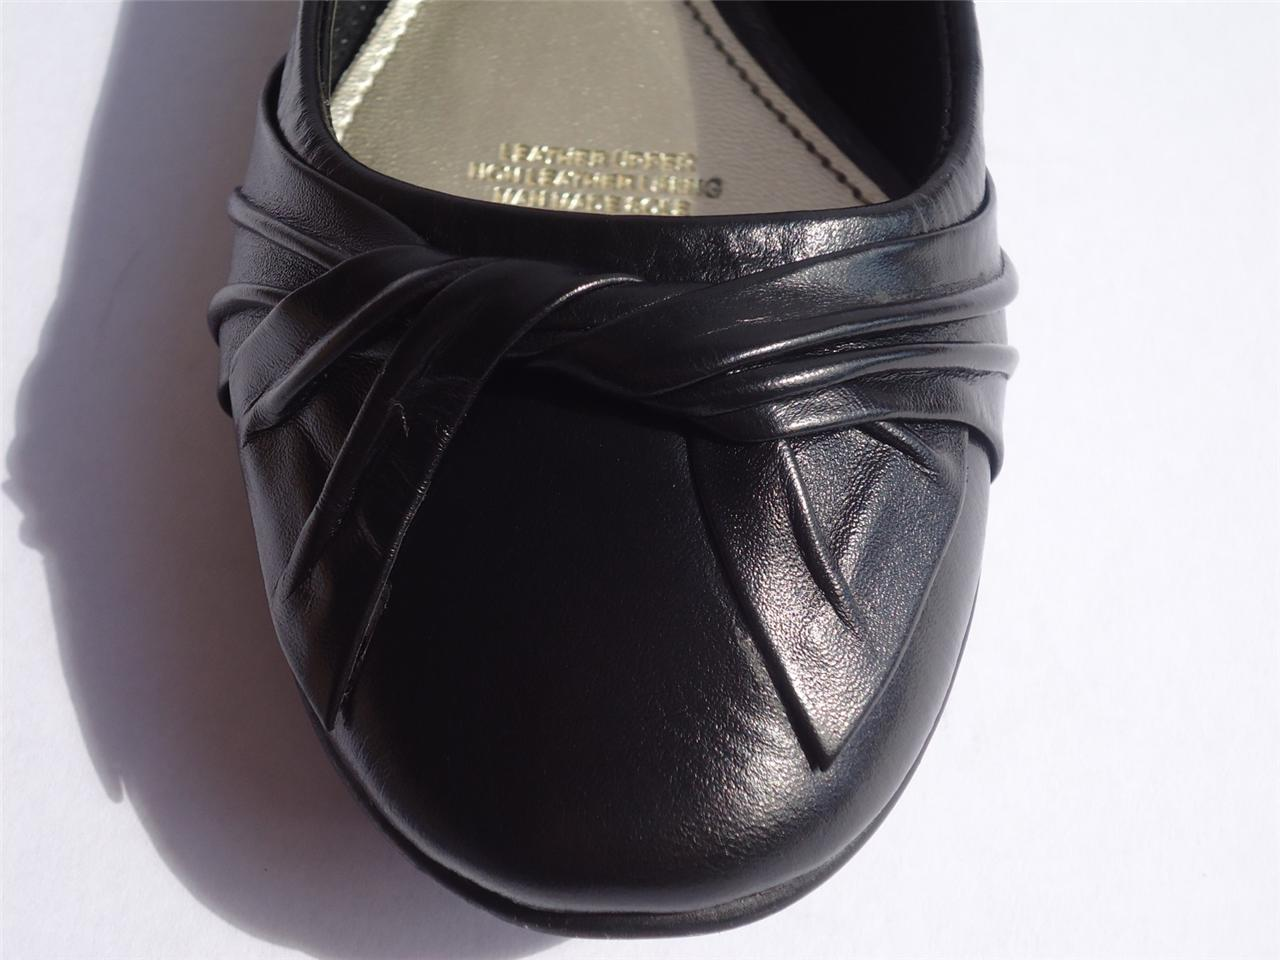 New-Womens-Diana-Ferrari-Leather-Shoe-Work-Ballet-Flat-Black-Sz-6-7-8-9-10-11-12